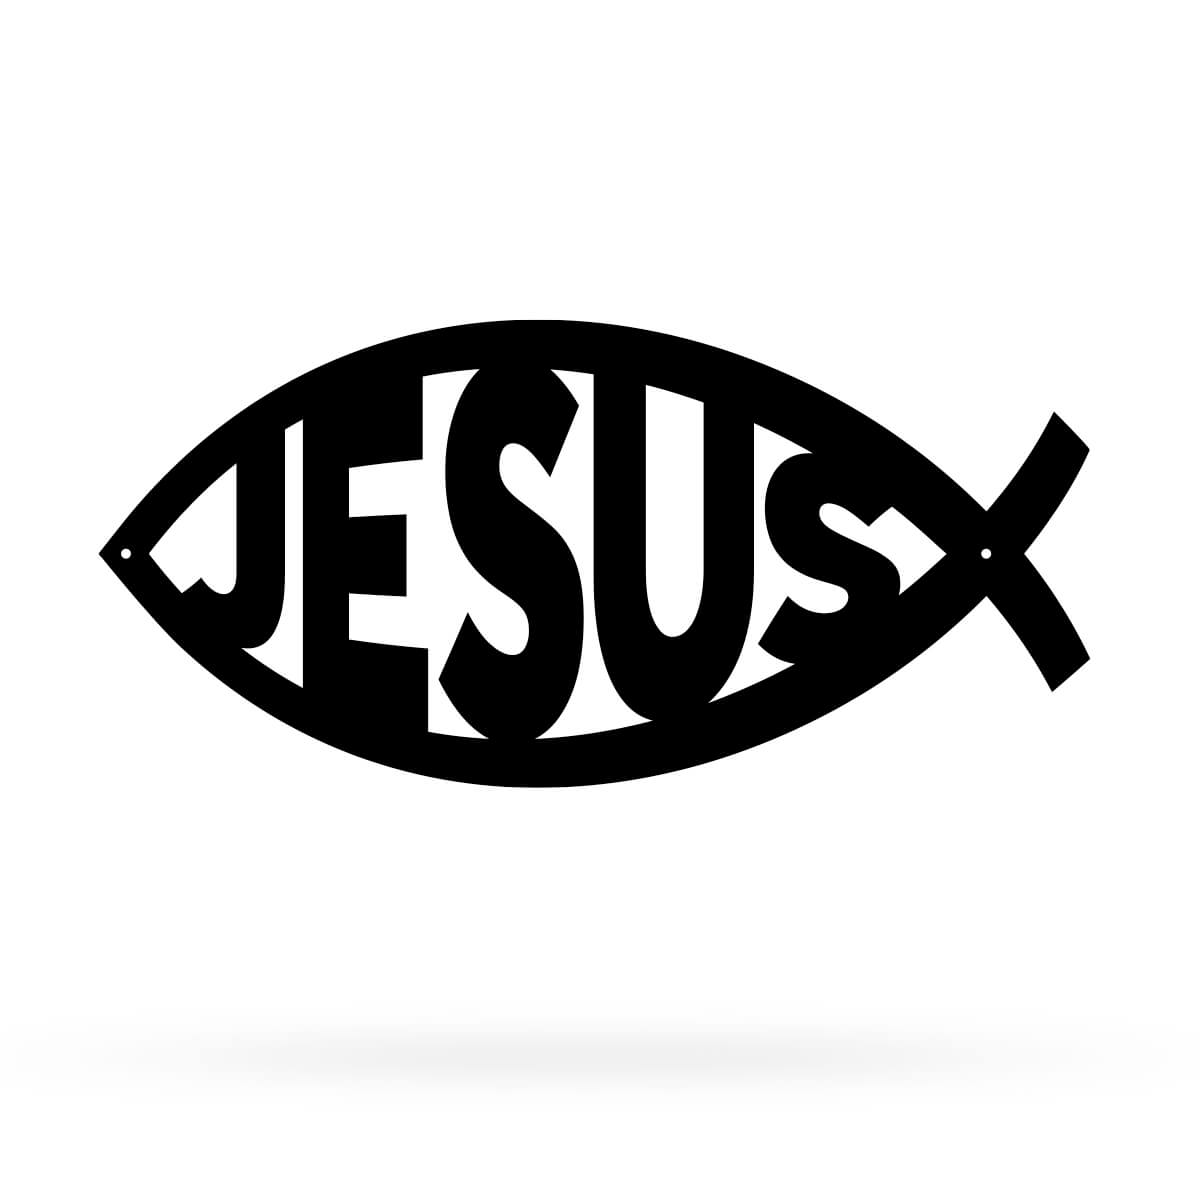 "Jesus Christ ""Ichthys"" Symbol Wall Art 7.5""x16"" - Design 1 / Black - RealSteel Center"